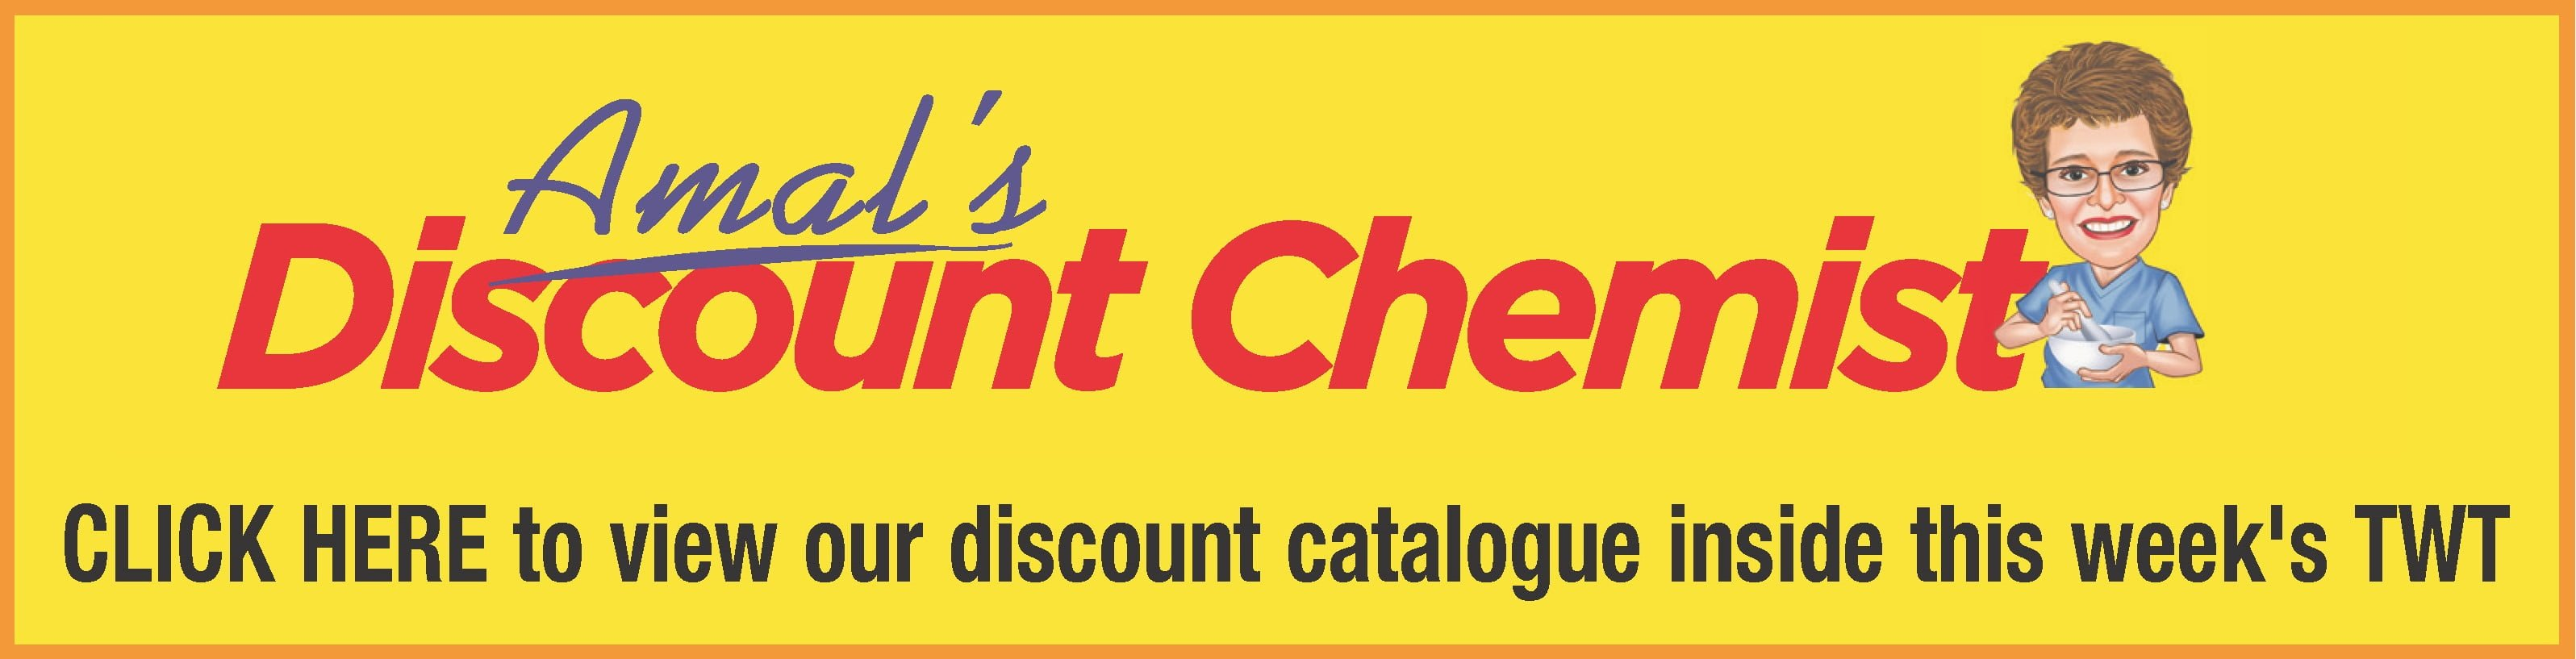 Amal's Discount Chemist April 2019 Catalogue - as found in The Weekly Times, 3rd April 2019